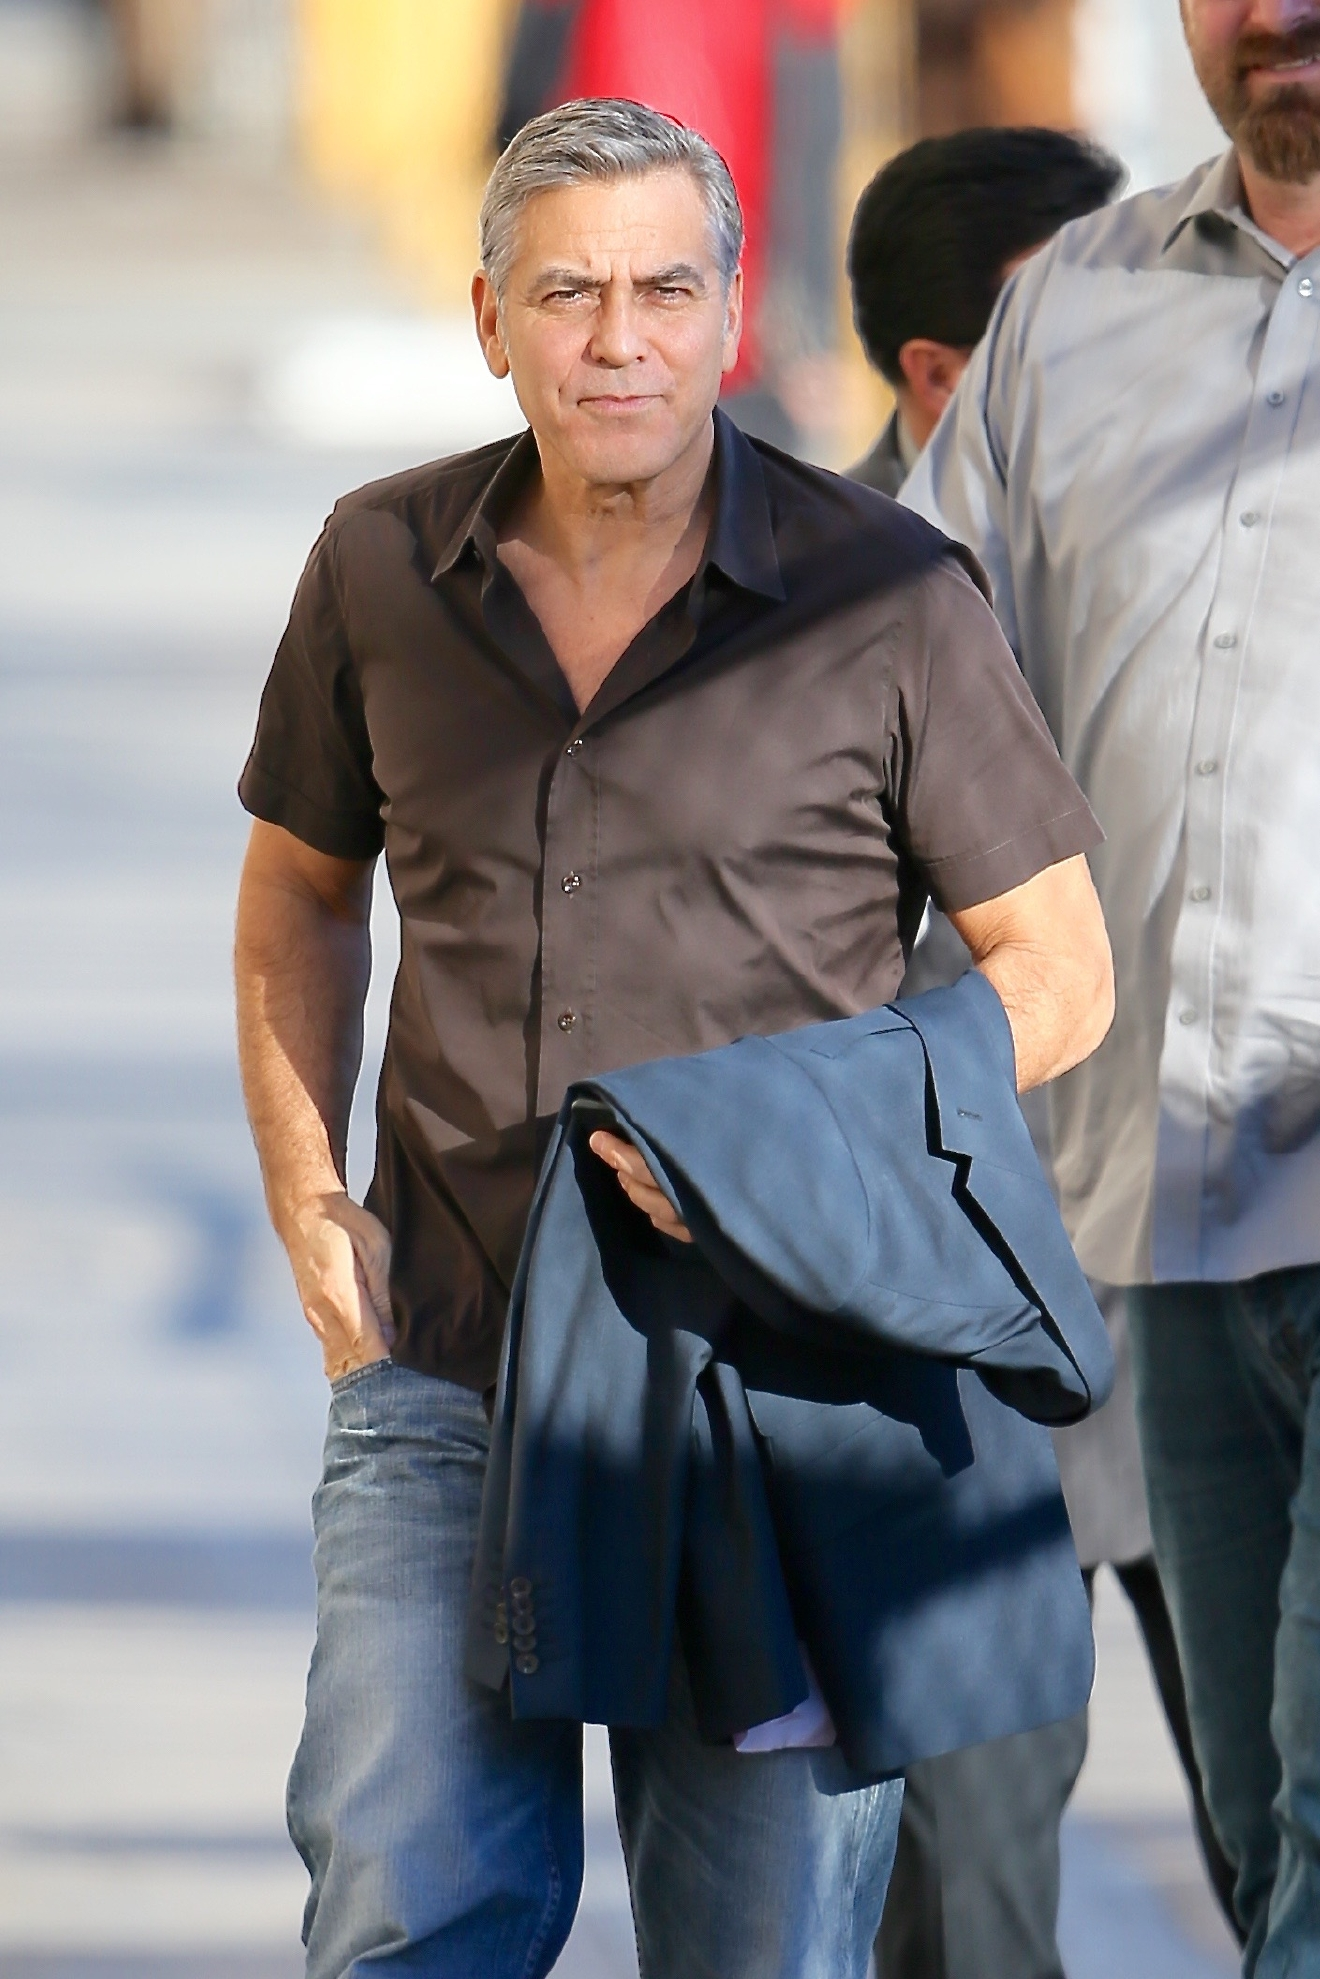 George Clooney seen arriving at the ABC studios for Jimmy Kimmel Live                                    Featuring: George Clooney                  Where: Los Angeles, California, United States                  When: 02 Feb 2016                  Credit: Michael Wright/WENN.com